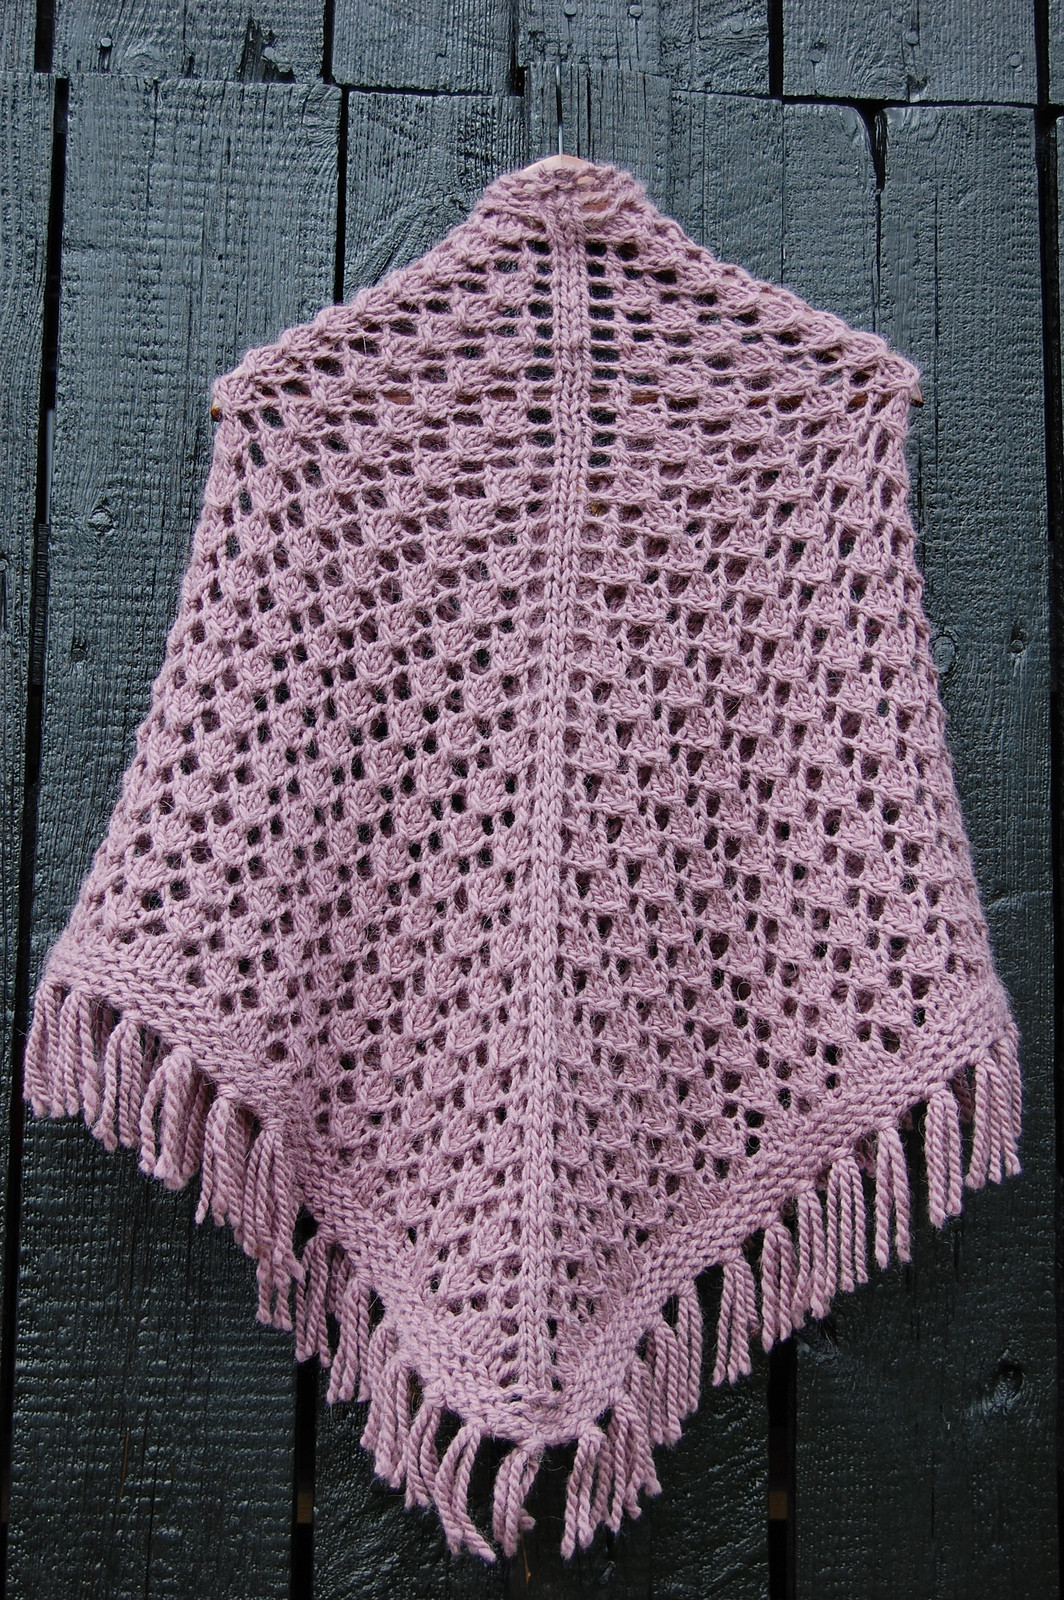 Inspirational Shawls for Bulky Yarn Knitting Patterns Free Knitting Patterns Bulky Yarn Of Lovely Super Bulky Yarn Knitting Patterns Free Knitting Patterns Bulky Yarn